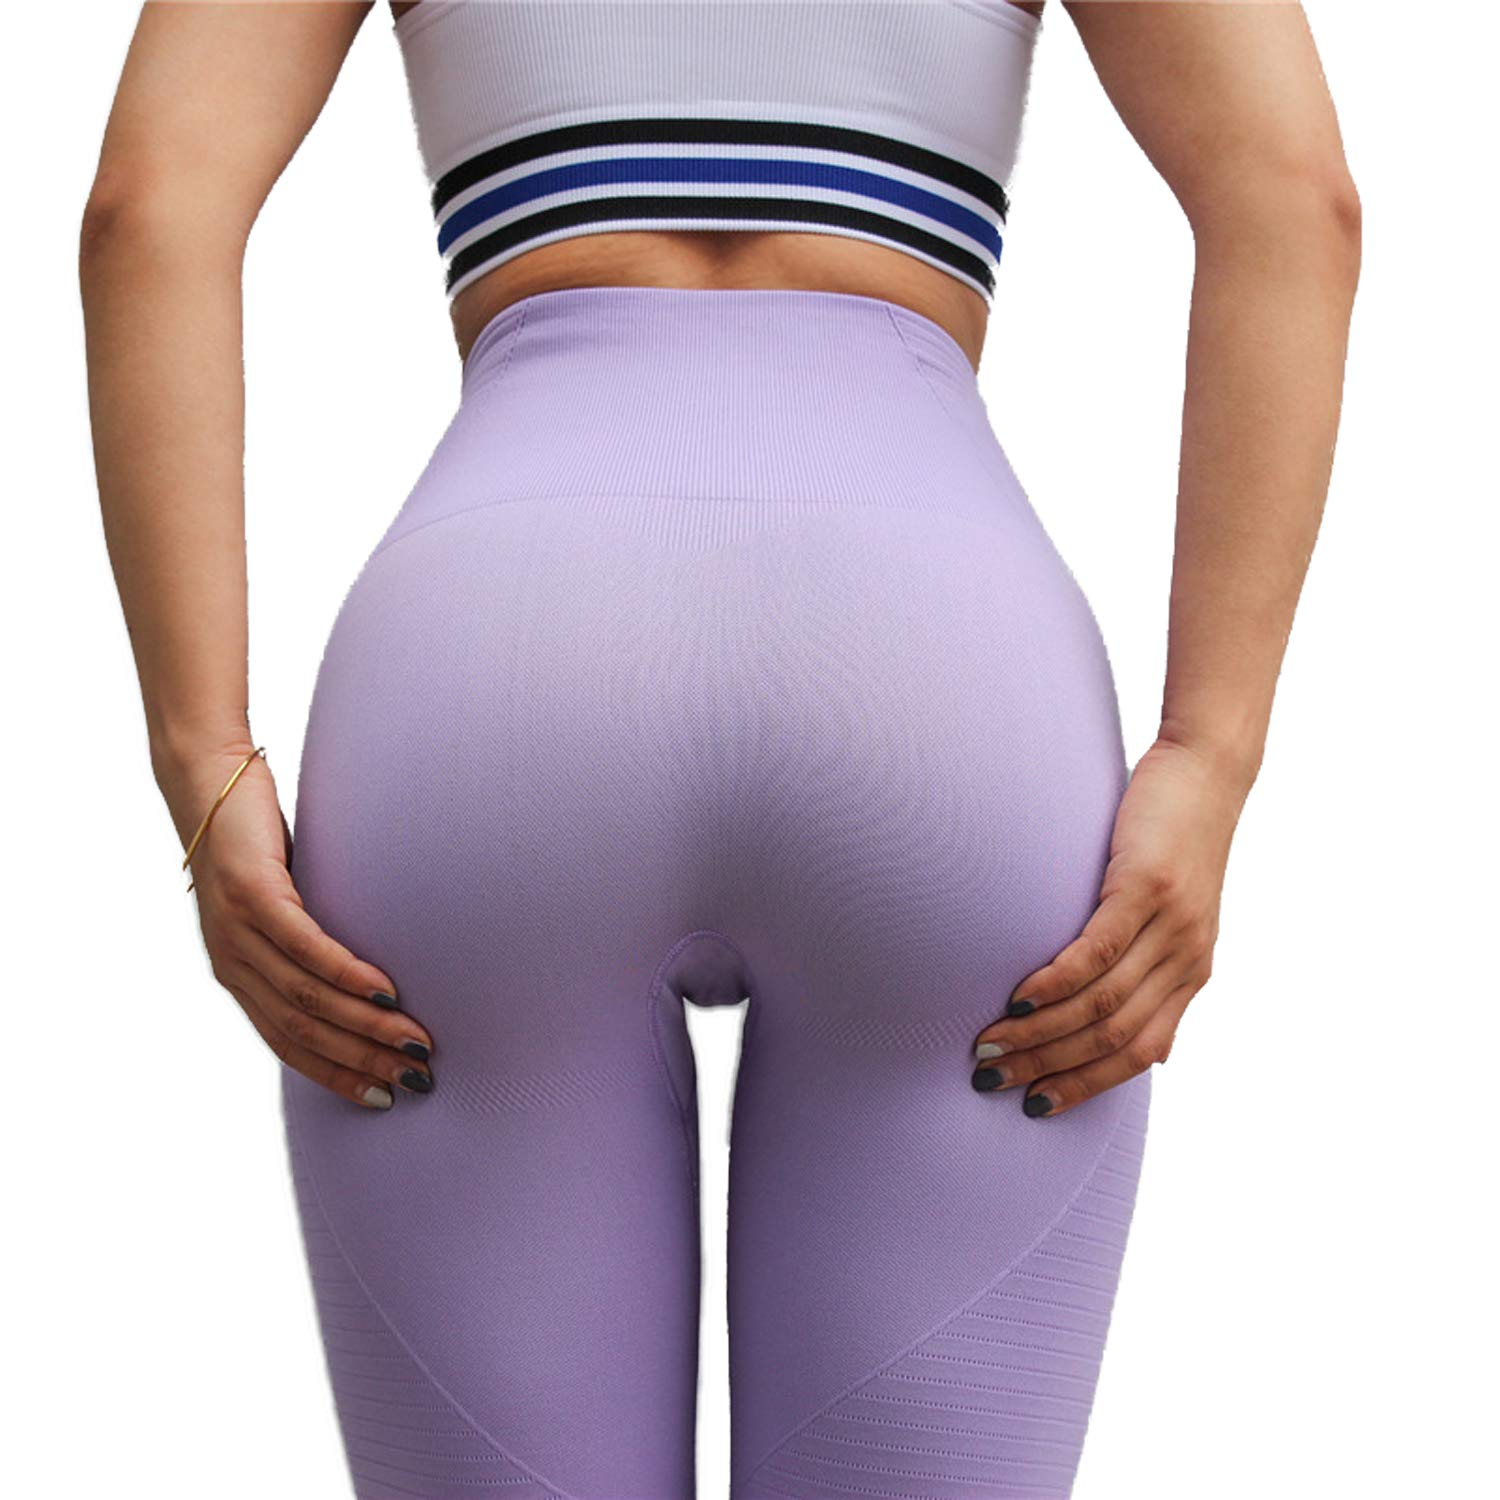 4 Light Purple RIOJOY Yoga Pants for Women Hollow Out Elastic Waist Tummy Control Stretchy Pants Fitness Leggings Gym Compression Sports Tights